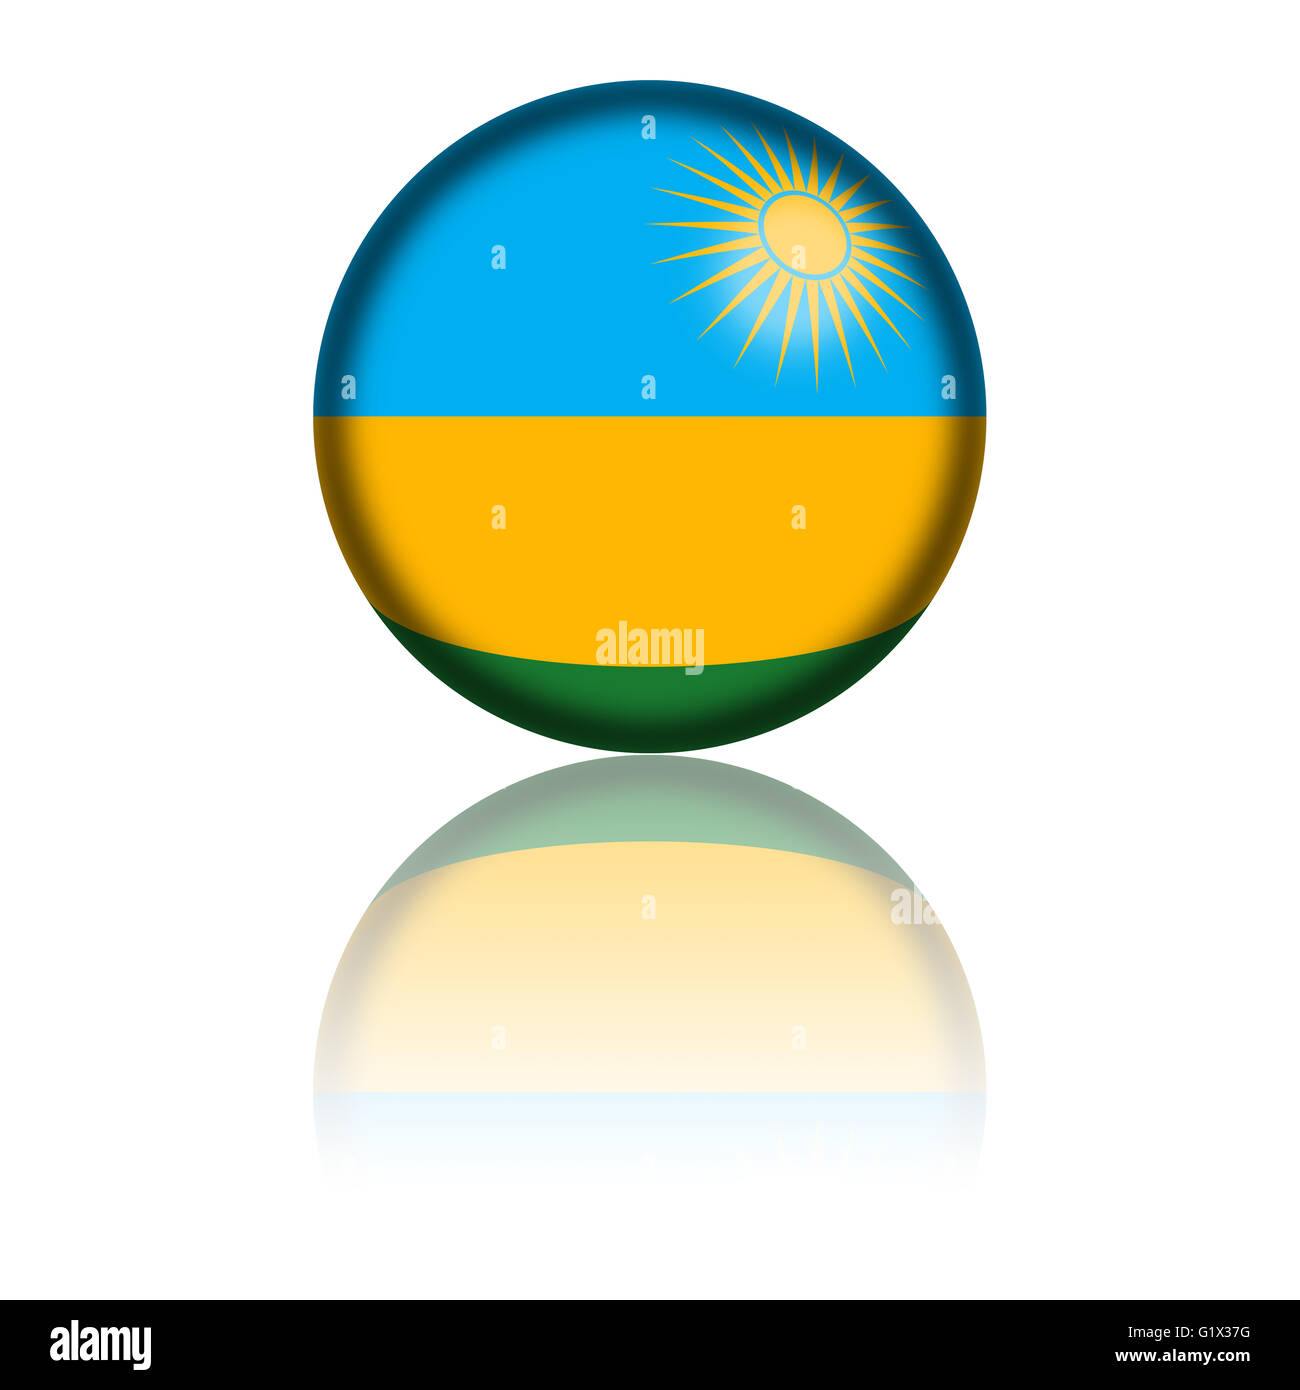 Sphere of Rwanda flag with reflection at bottom. - Stock Image